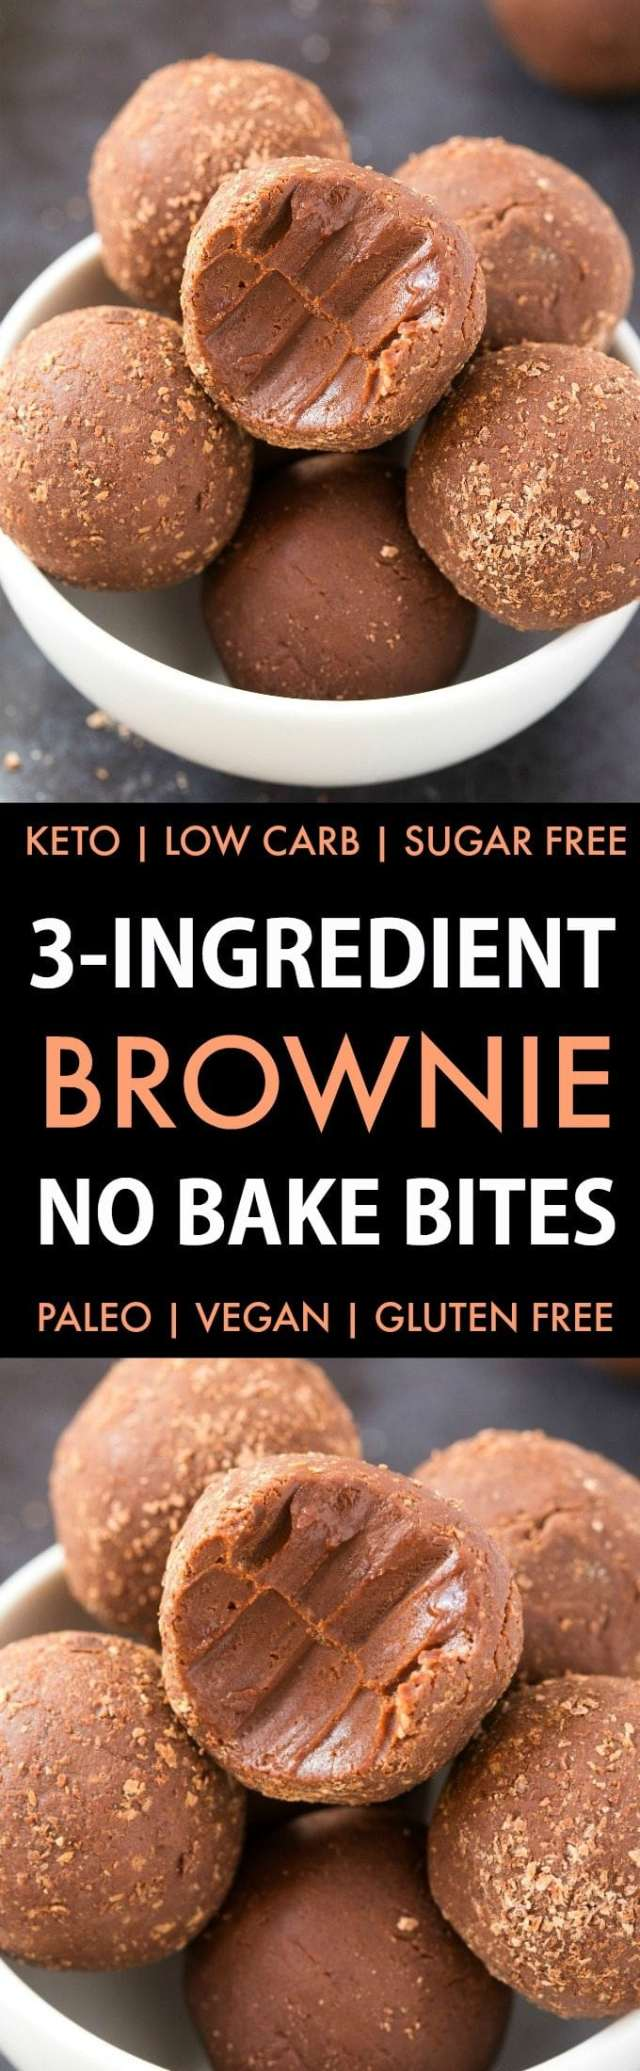 3-Ingredient Easy No Bake Brownie Bites (Keto, Paleo, Vegan, Sugar Free)- Quick and easy homemade brownie energy bites which take 5 minutes and need just 3 ingredients! A Fudgy, protein-rich, low carb snack to keep you satisfied! #energybites #nobake #ketorecipe #lowcarb | Recipe on thebigmansworld.com